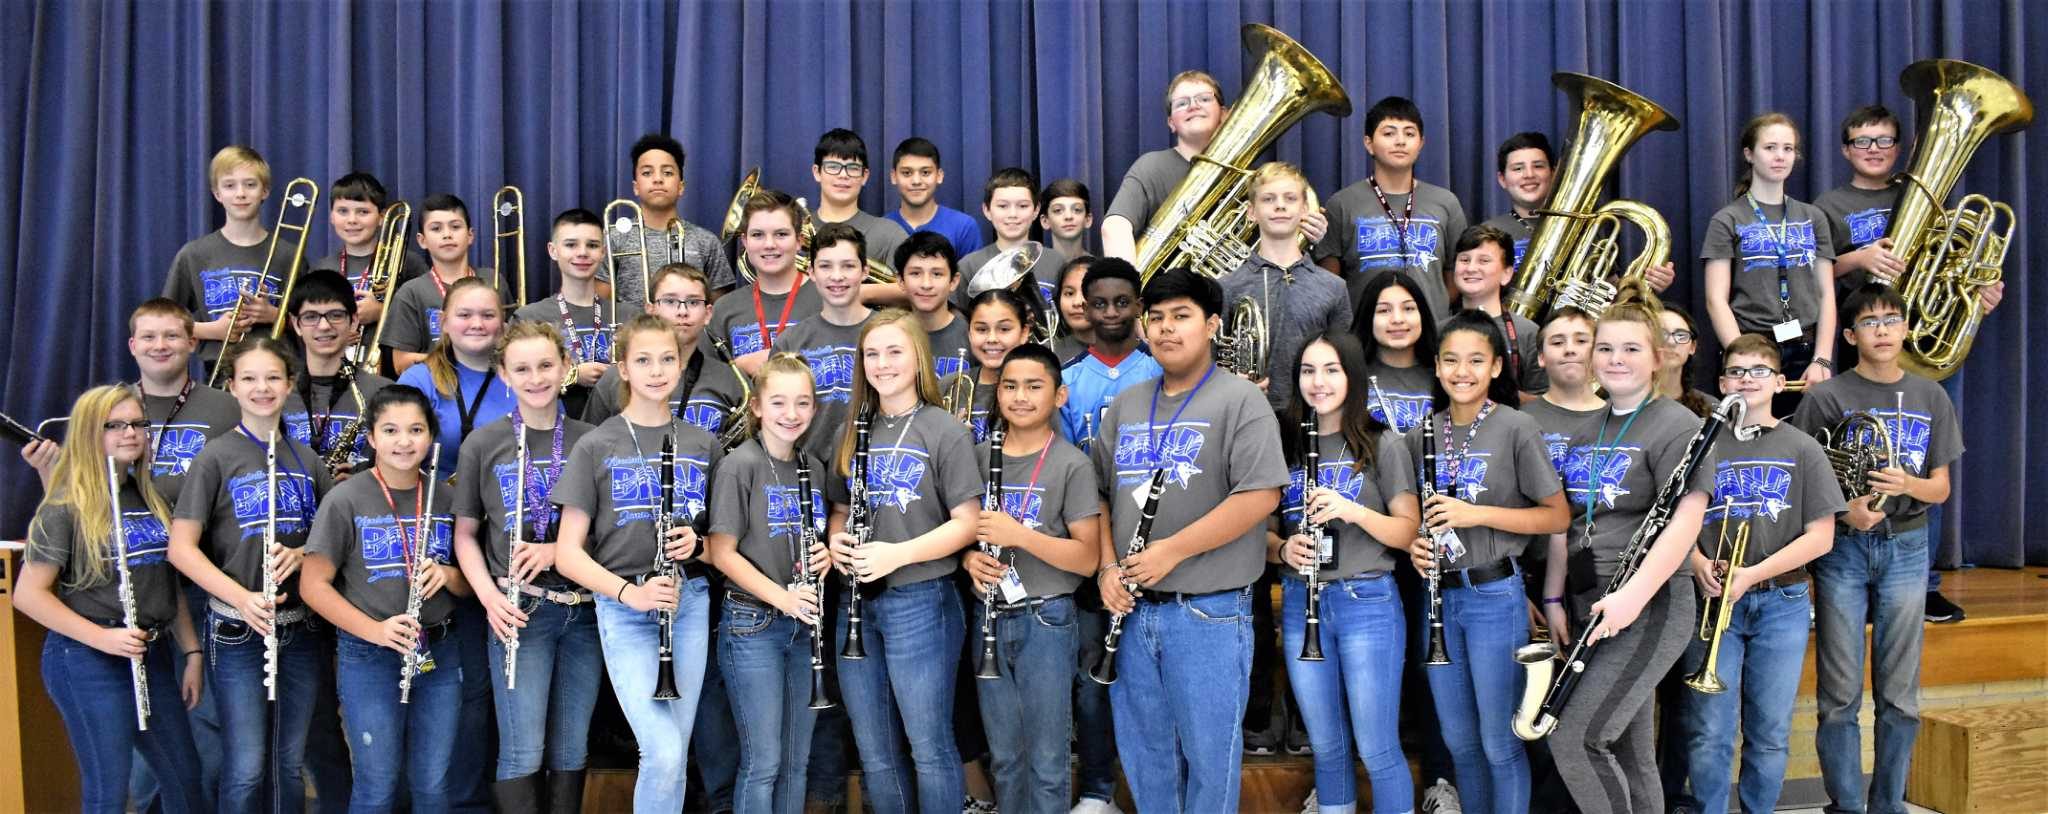 Needville Junior High band students honored